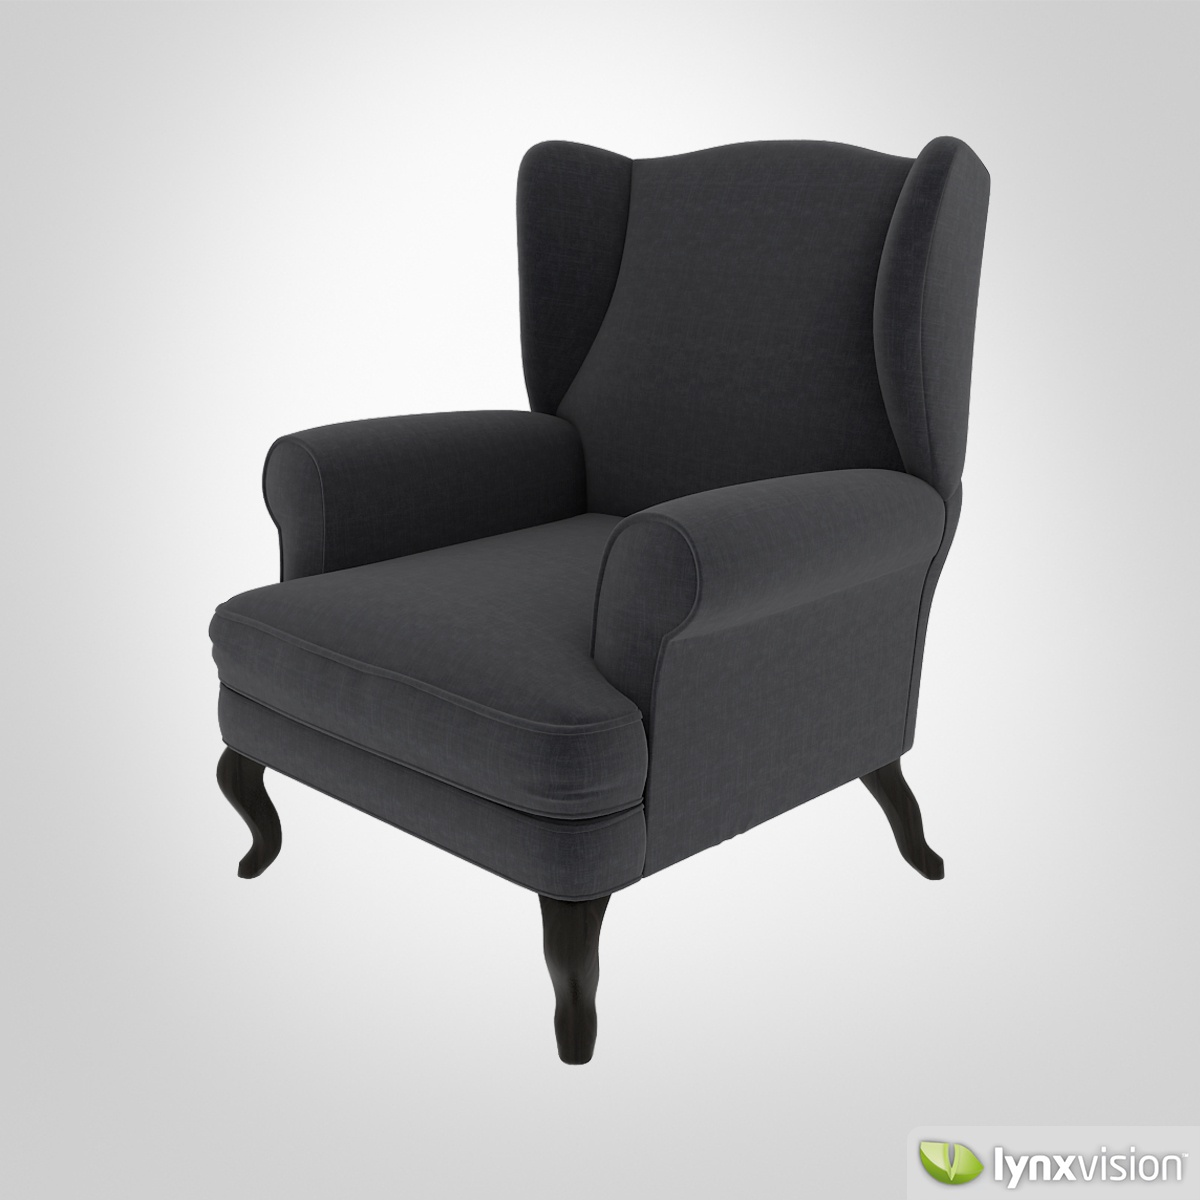 Free Upholstered Armchair Free 3D Model MAX OBJ FBX